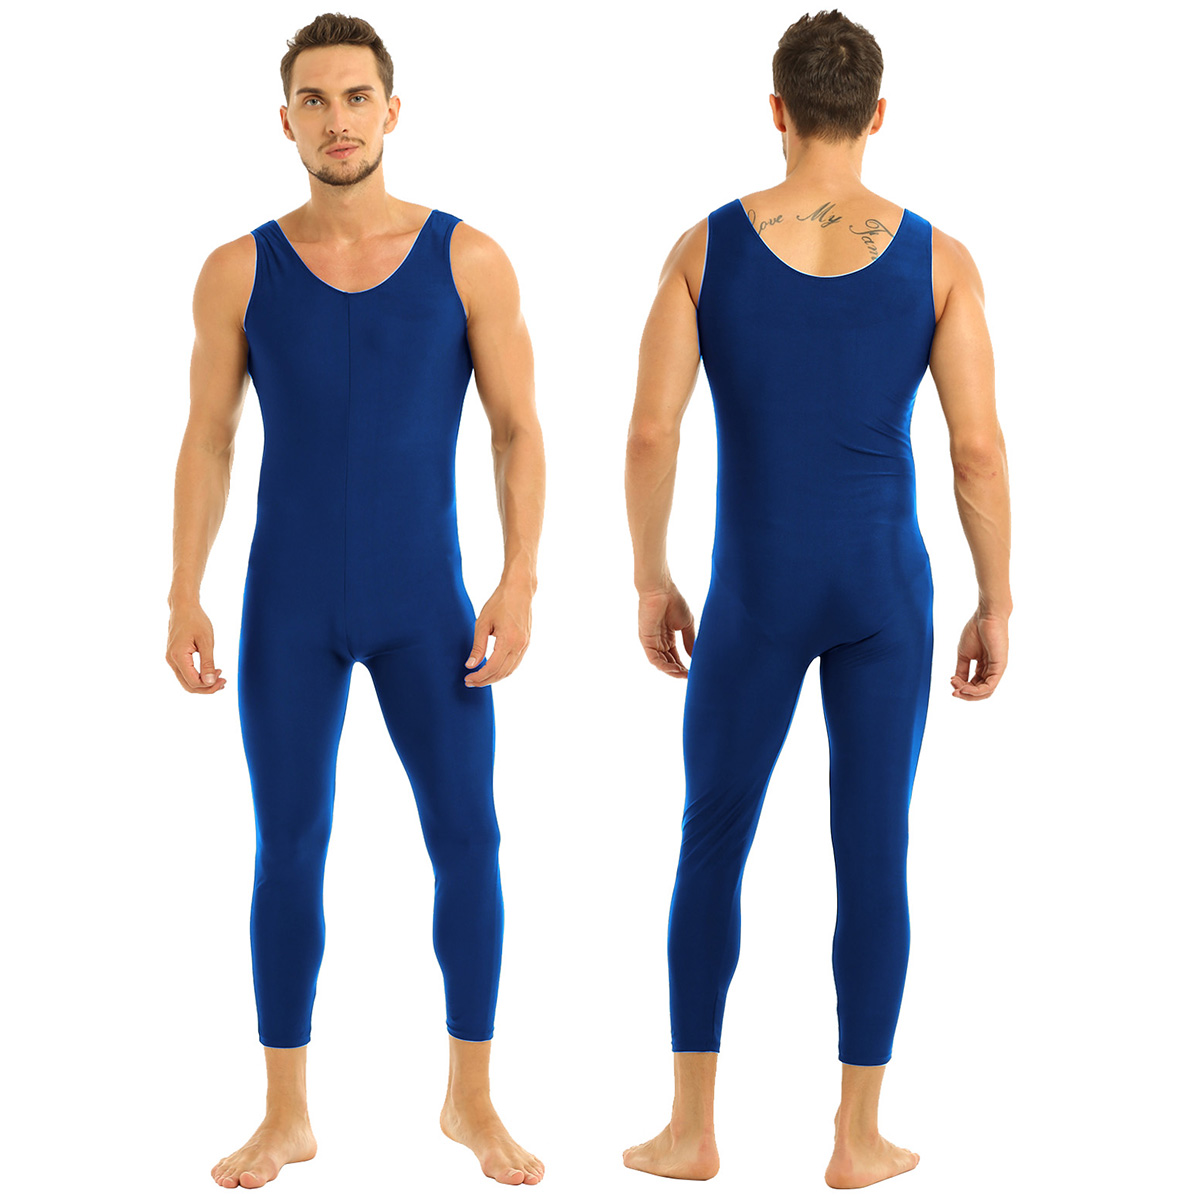 Men Sleeveless Leotard Bodysuit Lycra Tights Leggings for Ballet Dance Vest Teddy Sports Unitard Catsuit Male Dancewear Jumpsuit 22